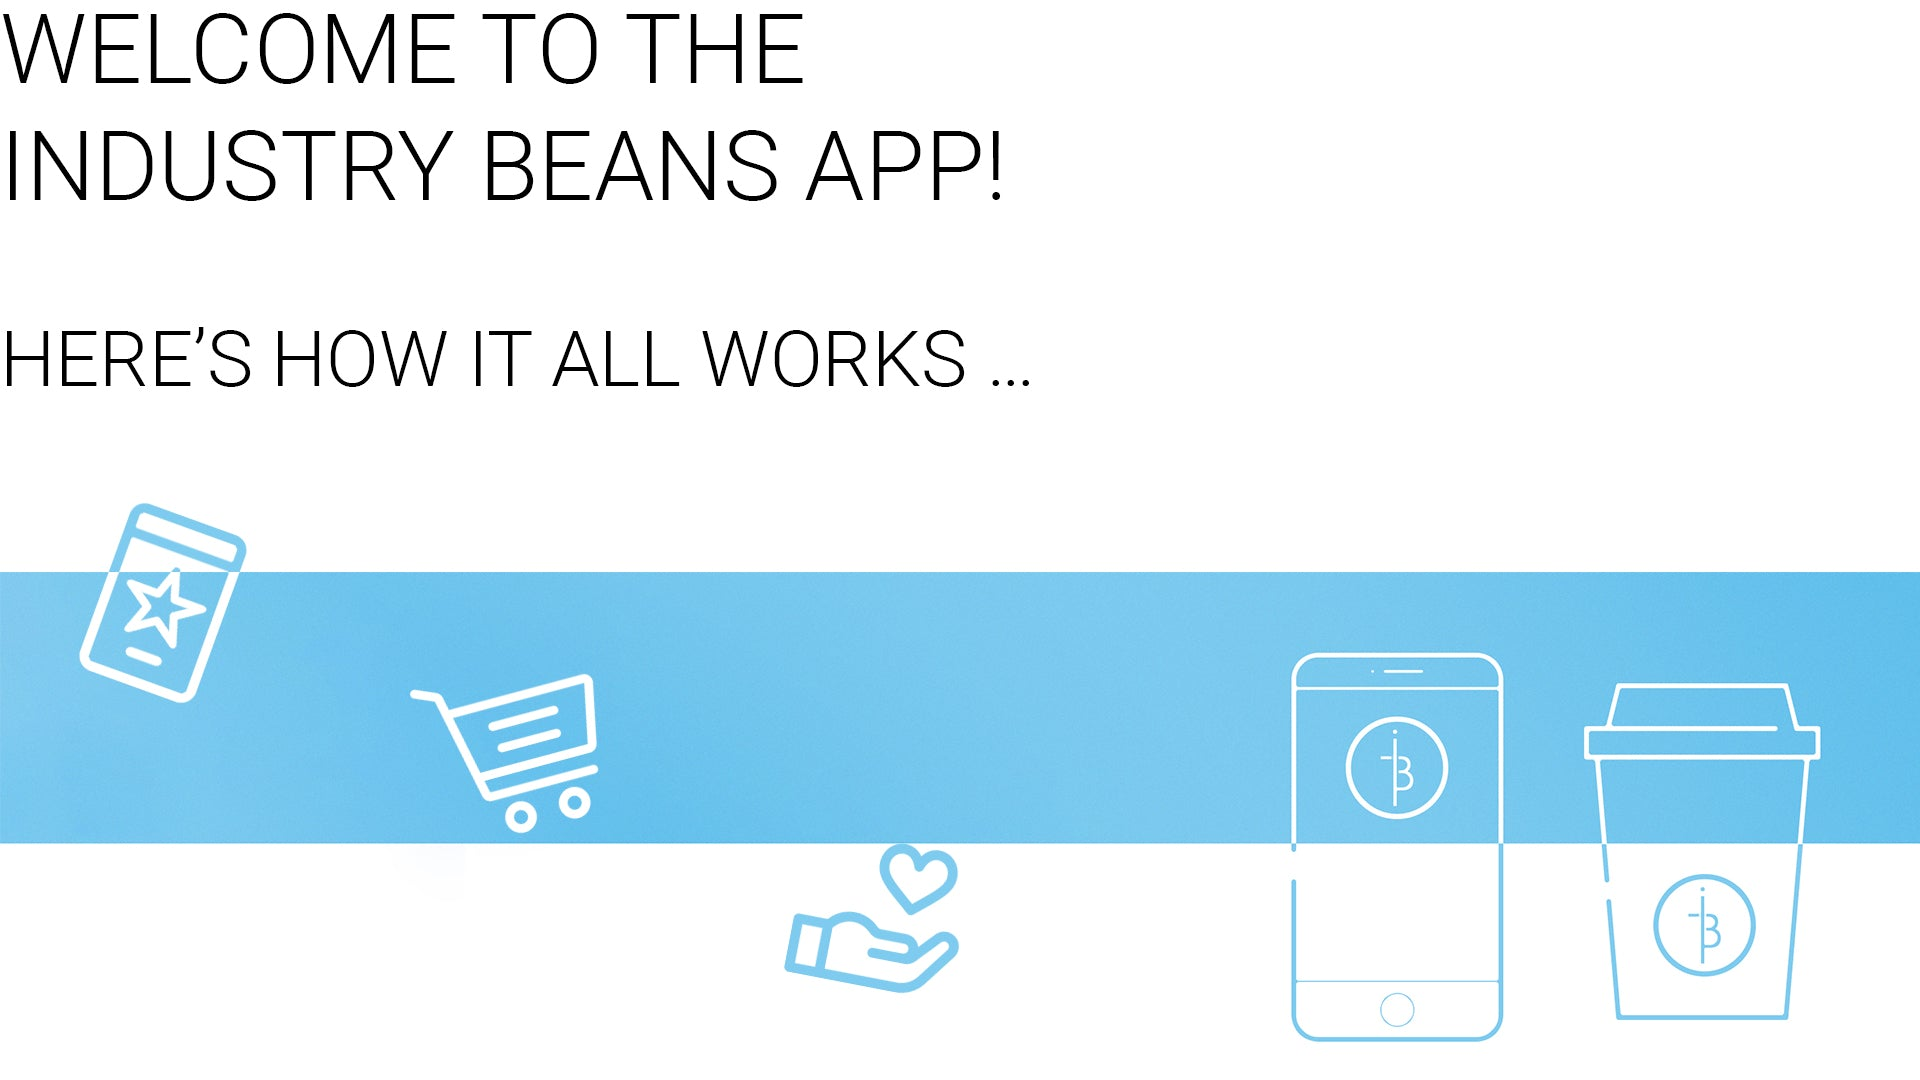 Industry Beans App is here